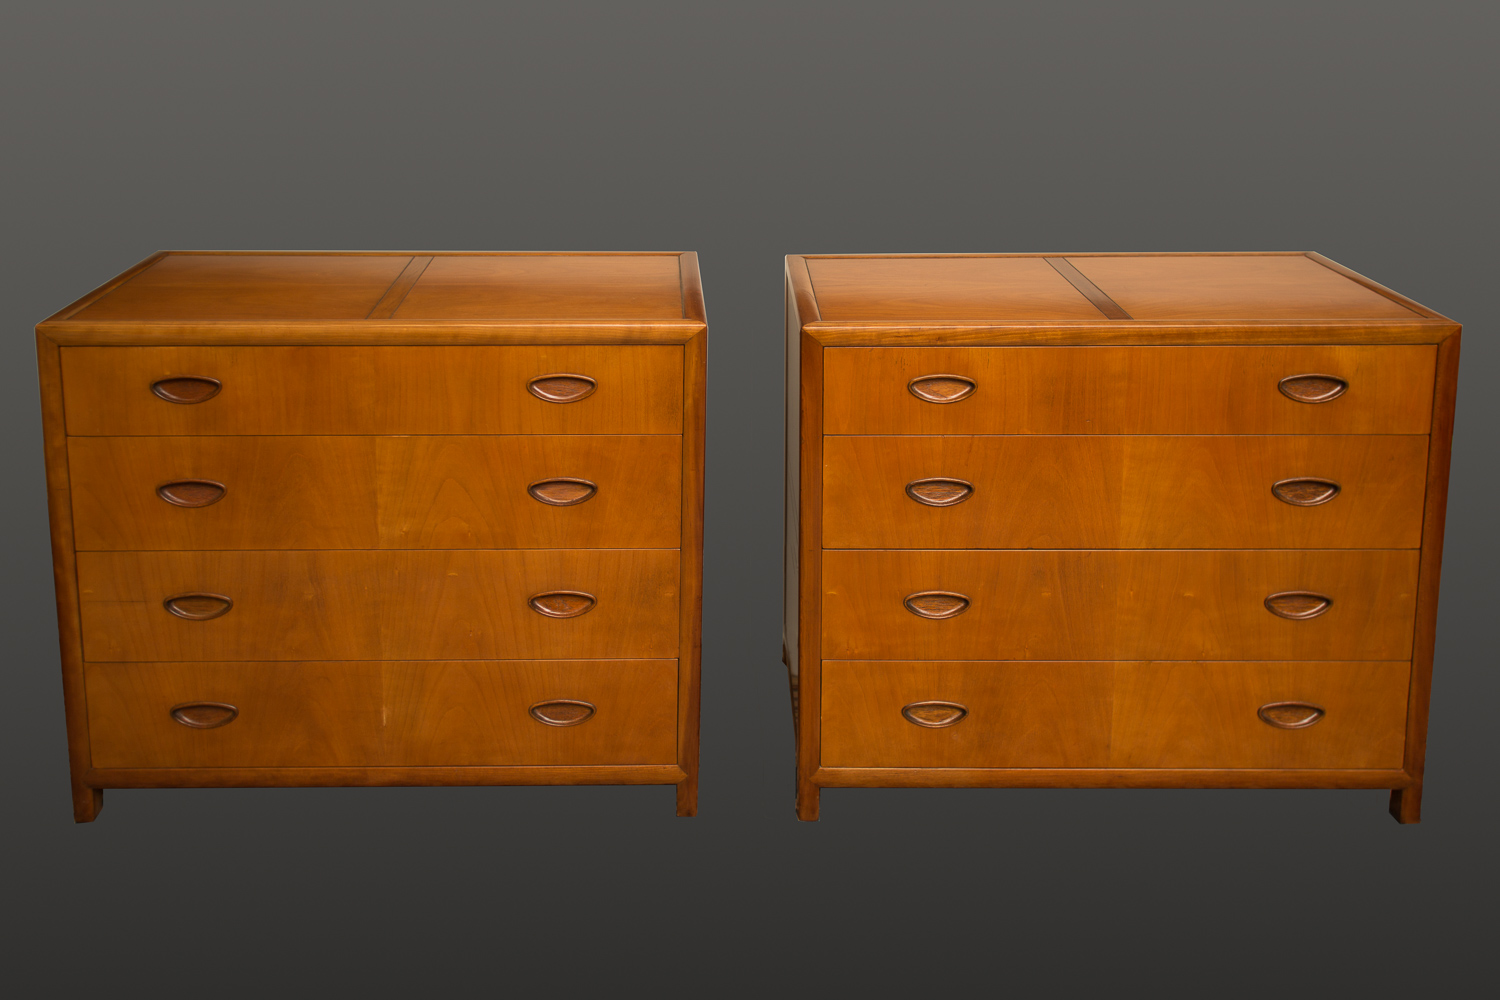 Pair of Michael Taylor Four Drawer Chests in Elm Wood